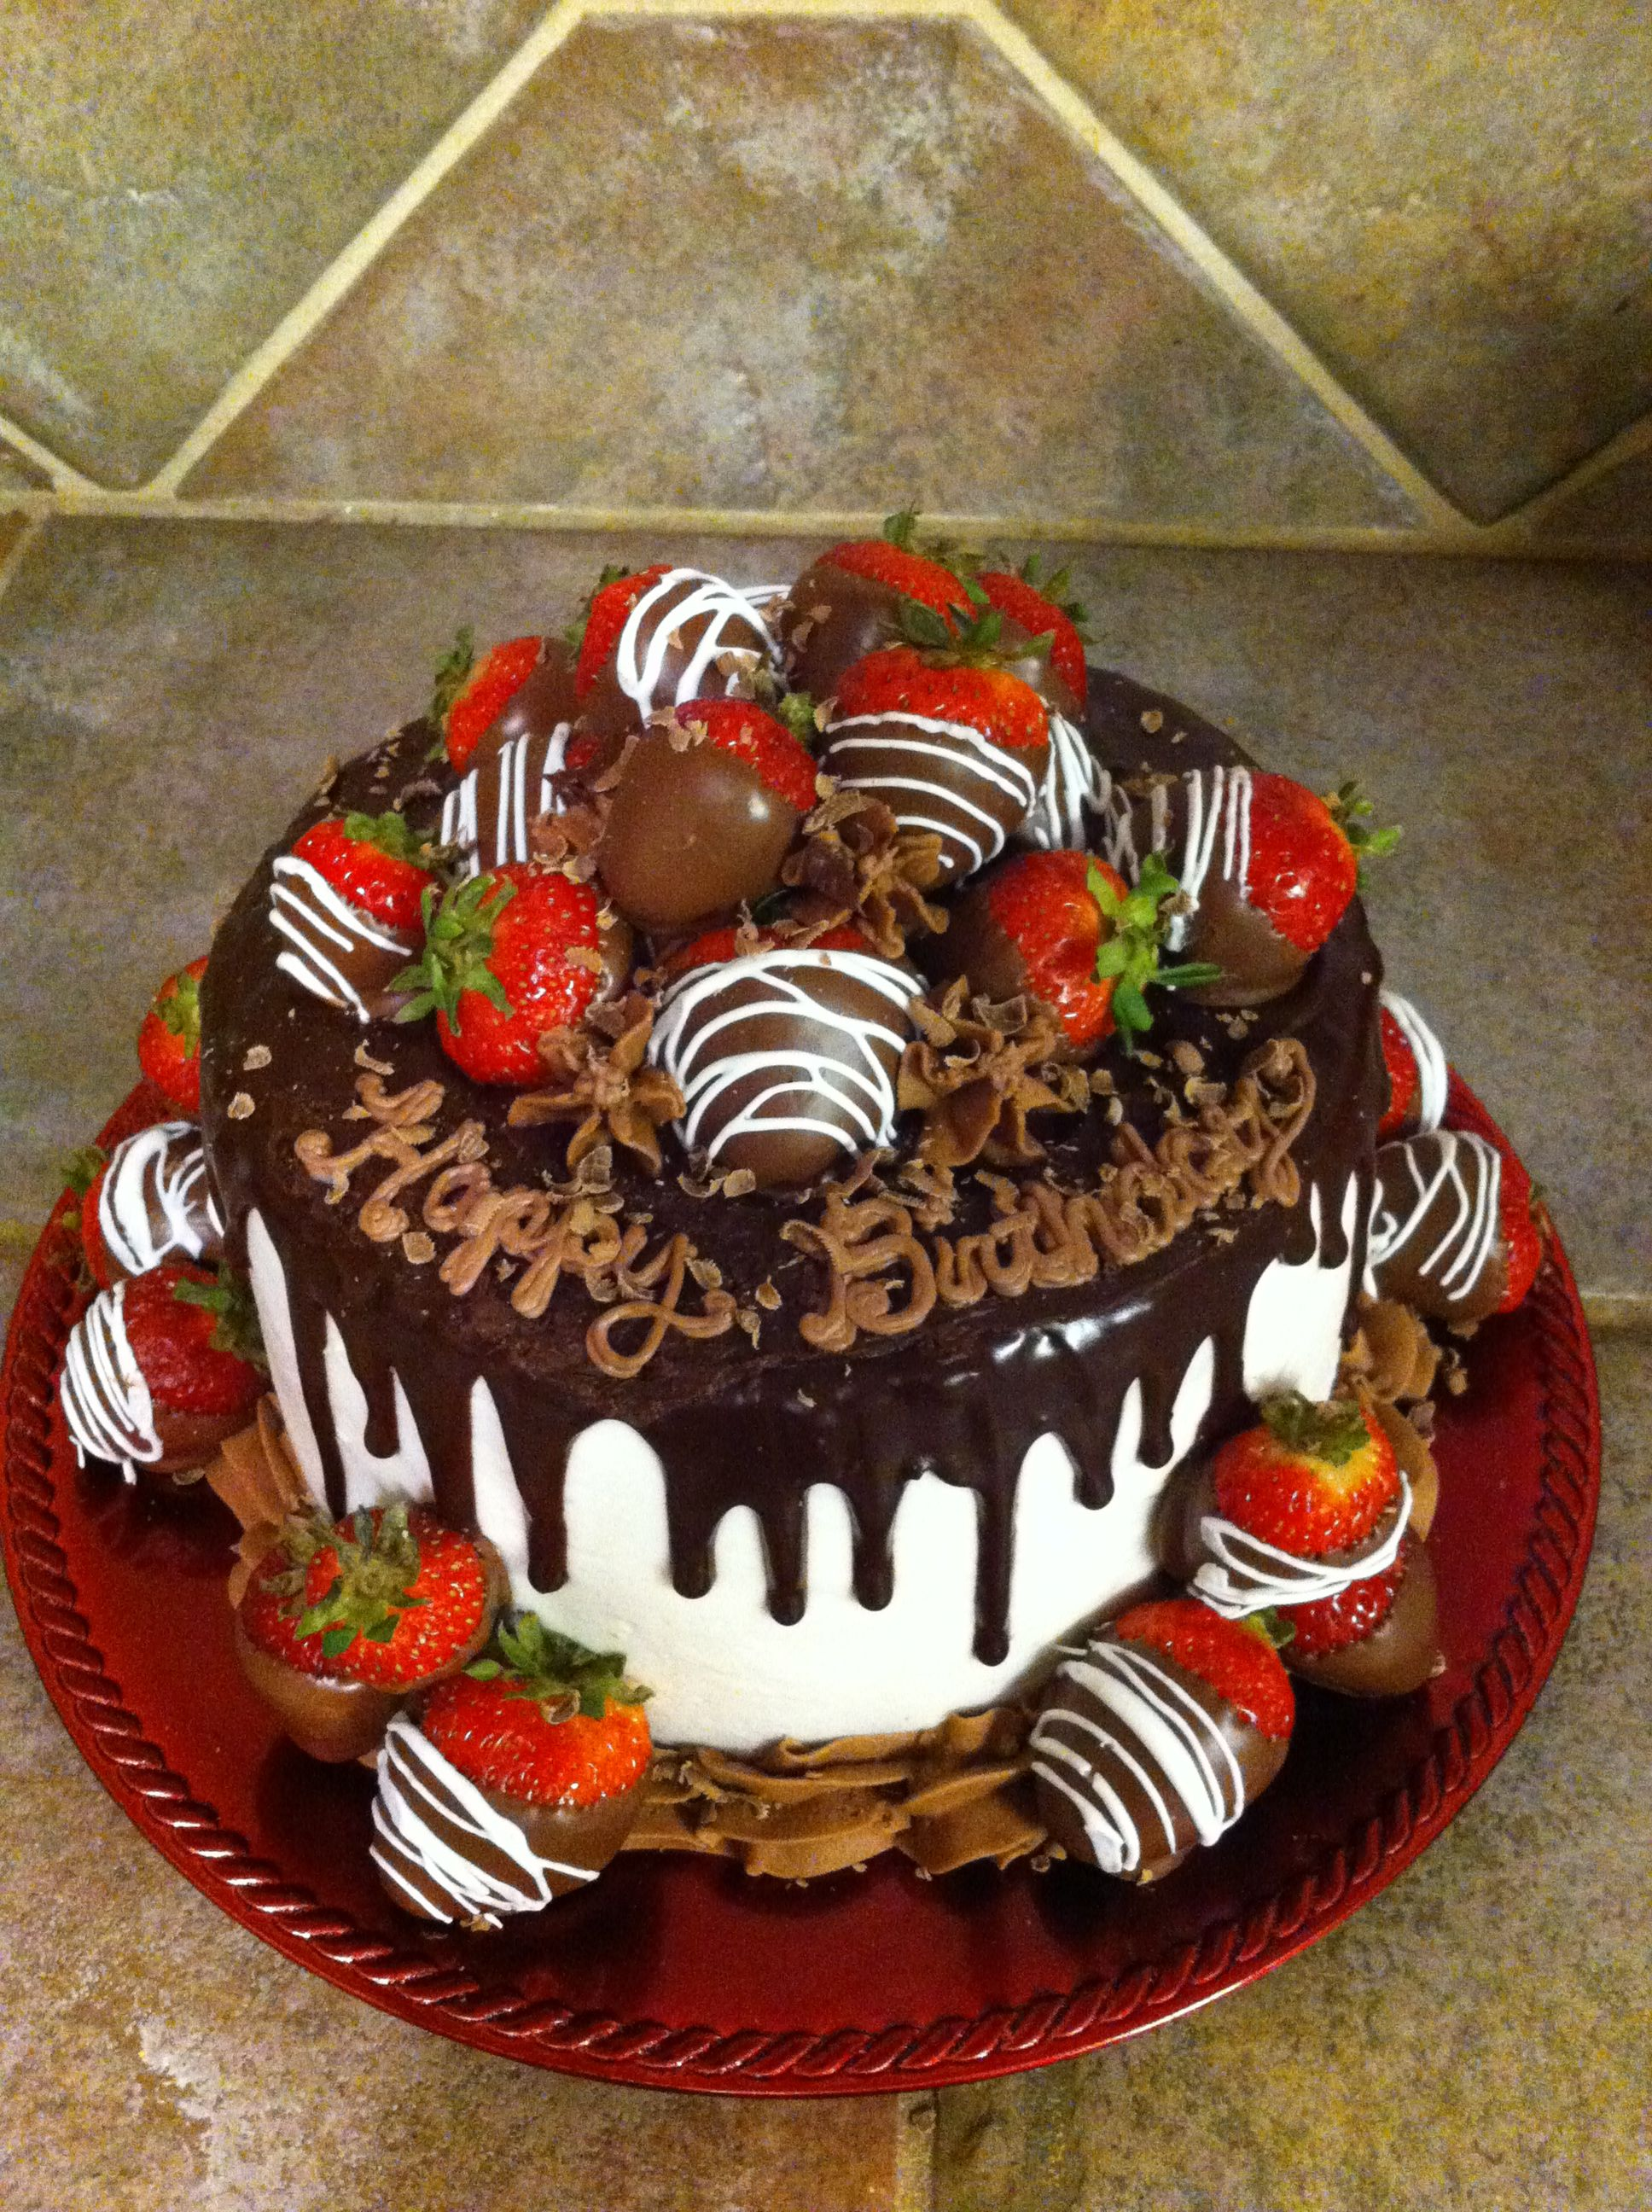 Chocolate covered strawberries birthday cake | Cakes and crafts ...